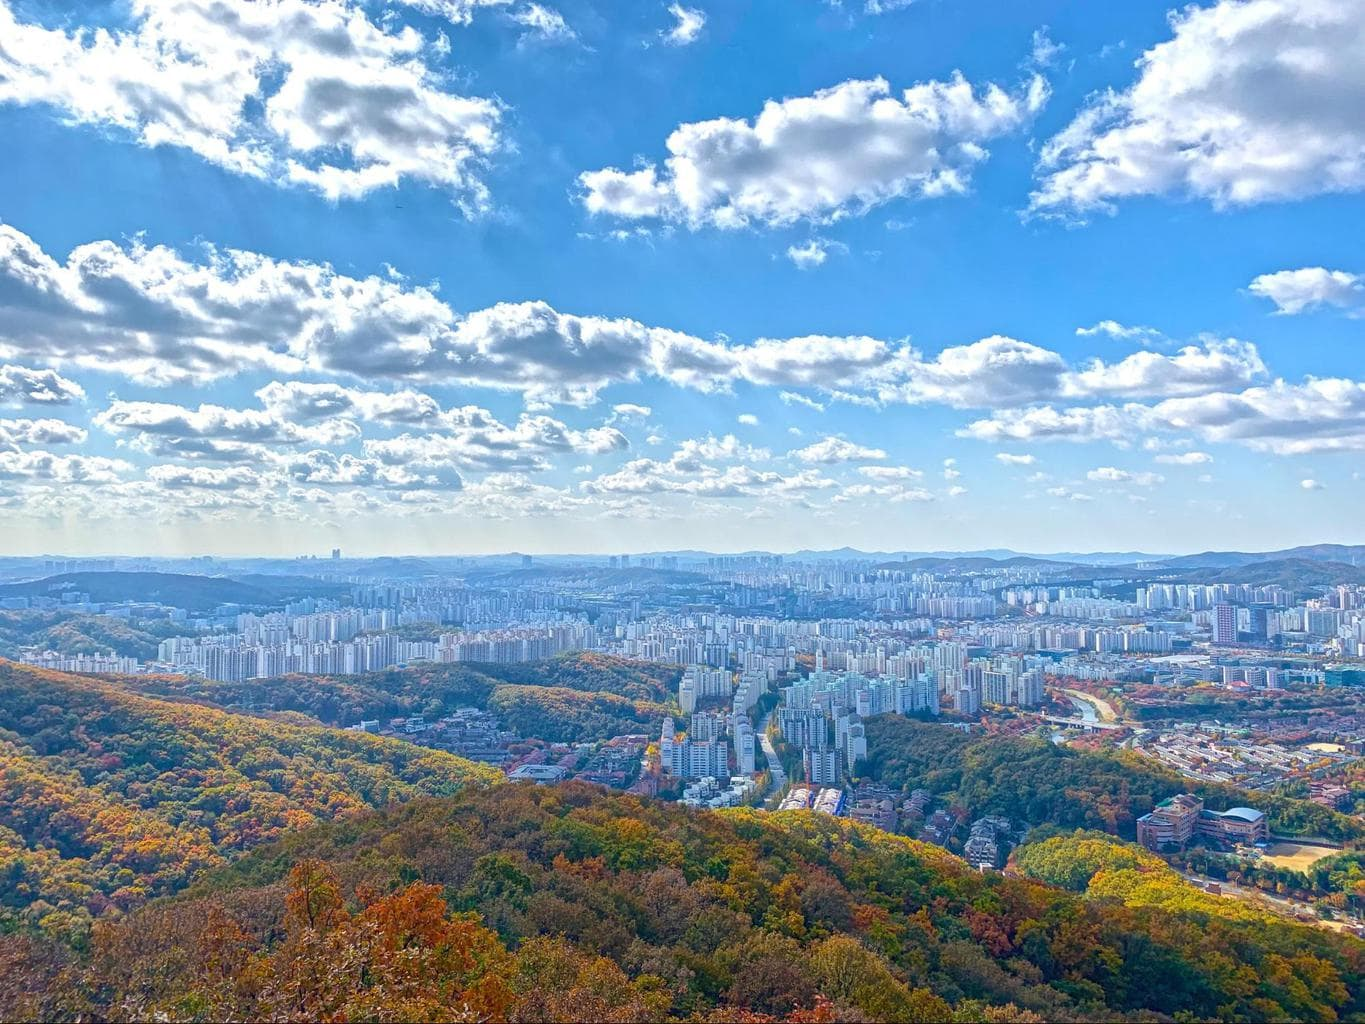 Mountain views in Korea